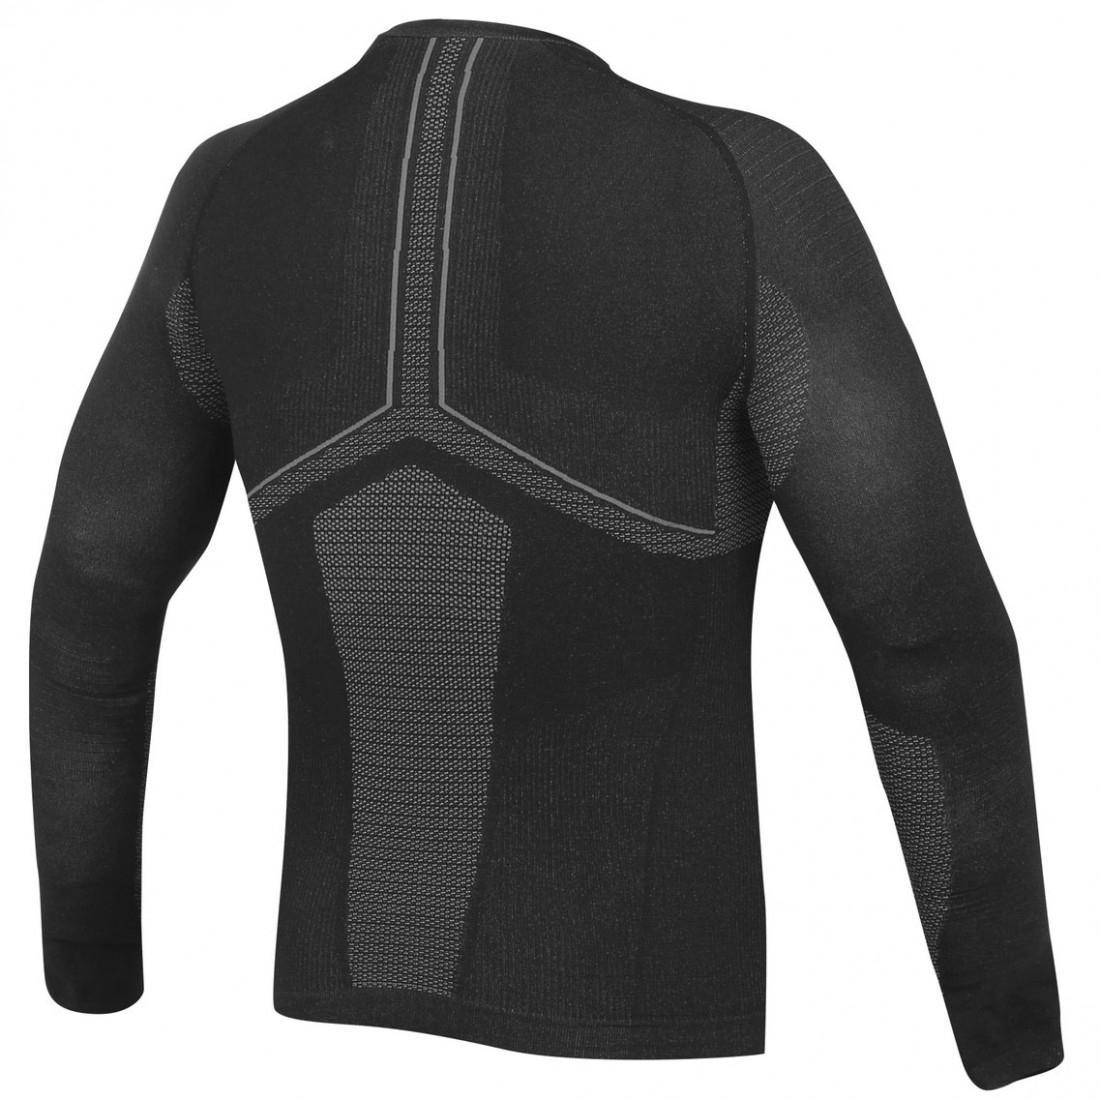 Térmico DAINESE D-Core No-Wind Dry LS Black   Anthracite · Motocard b81acd1d50a